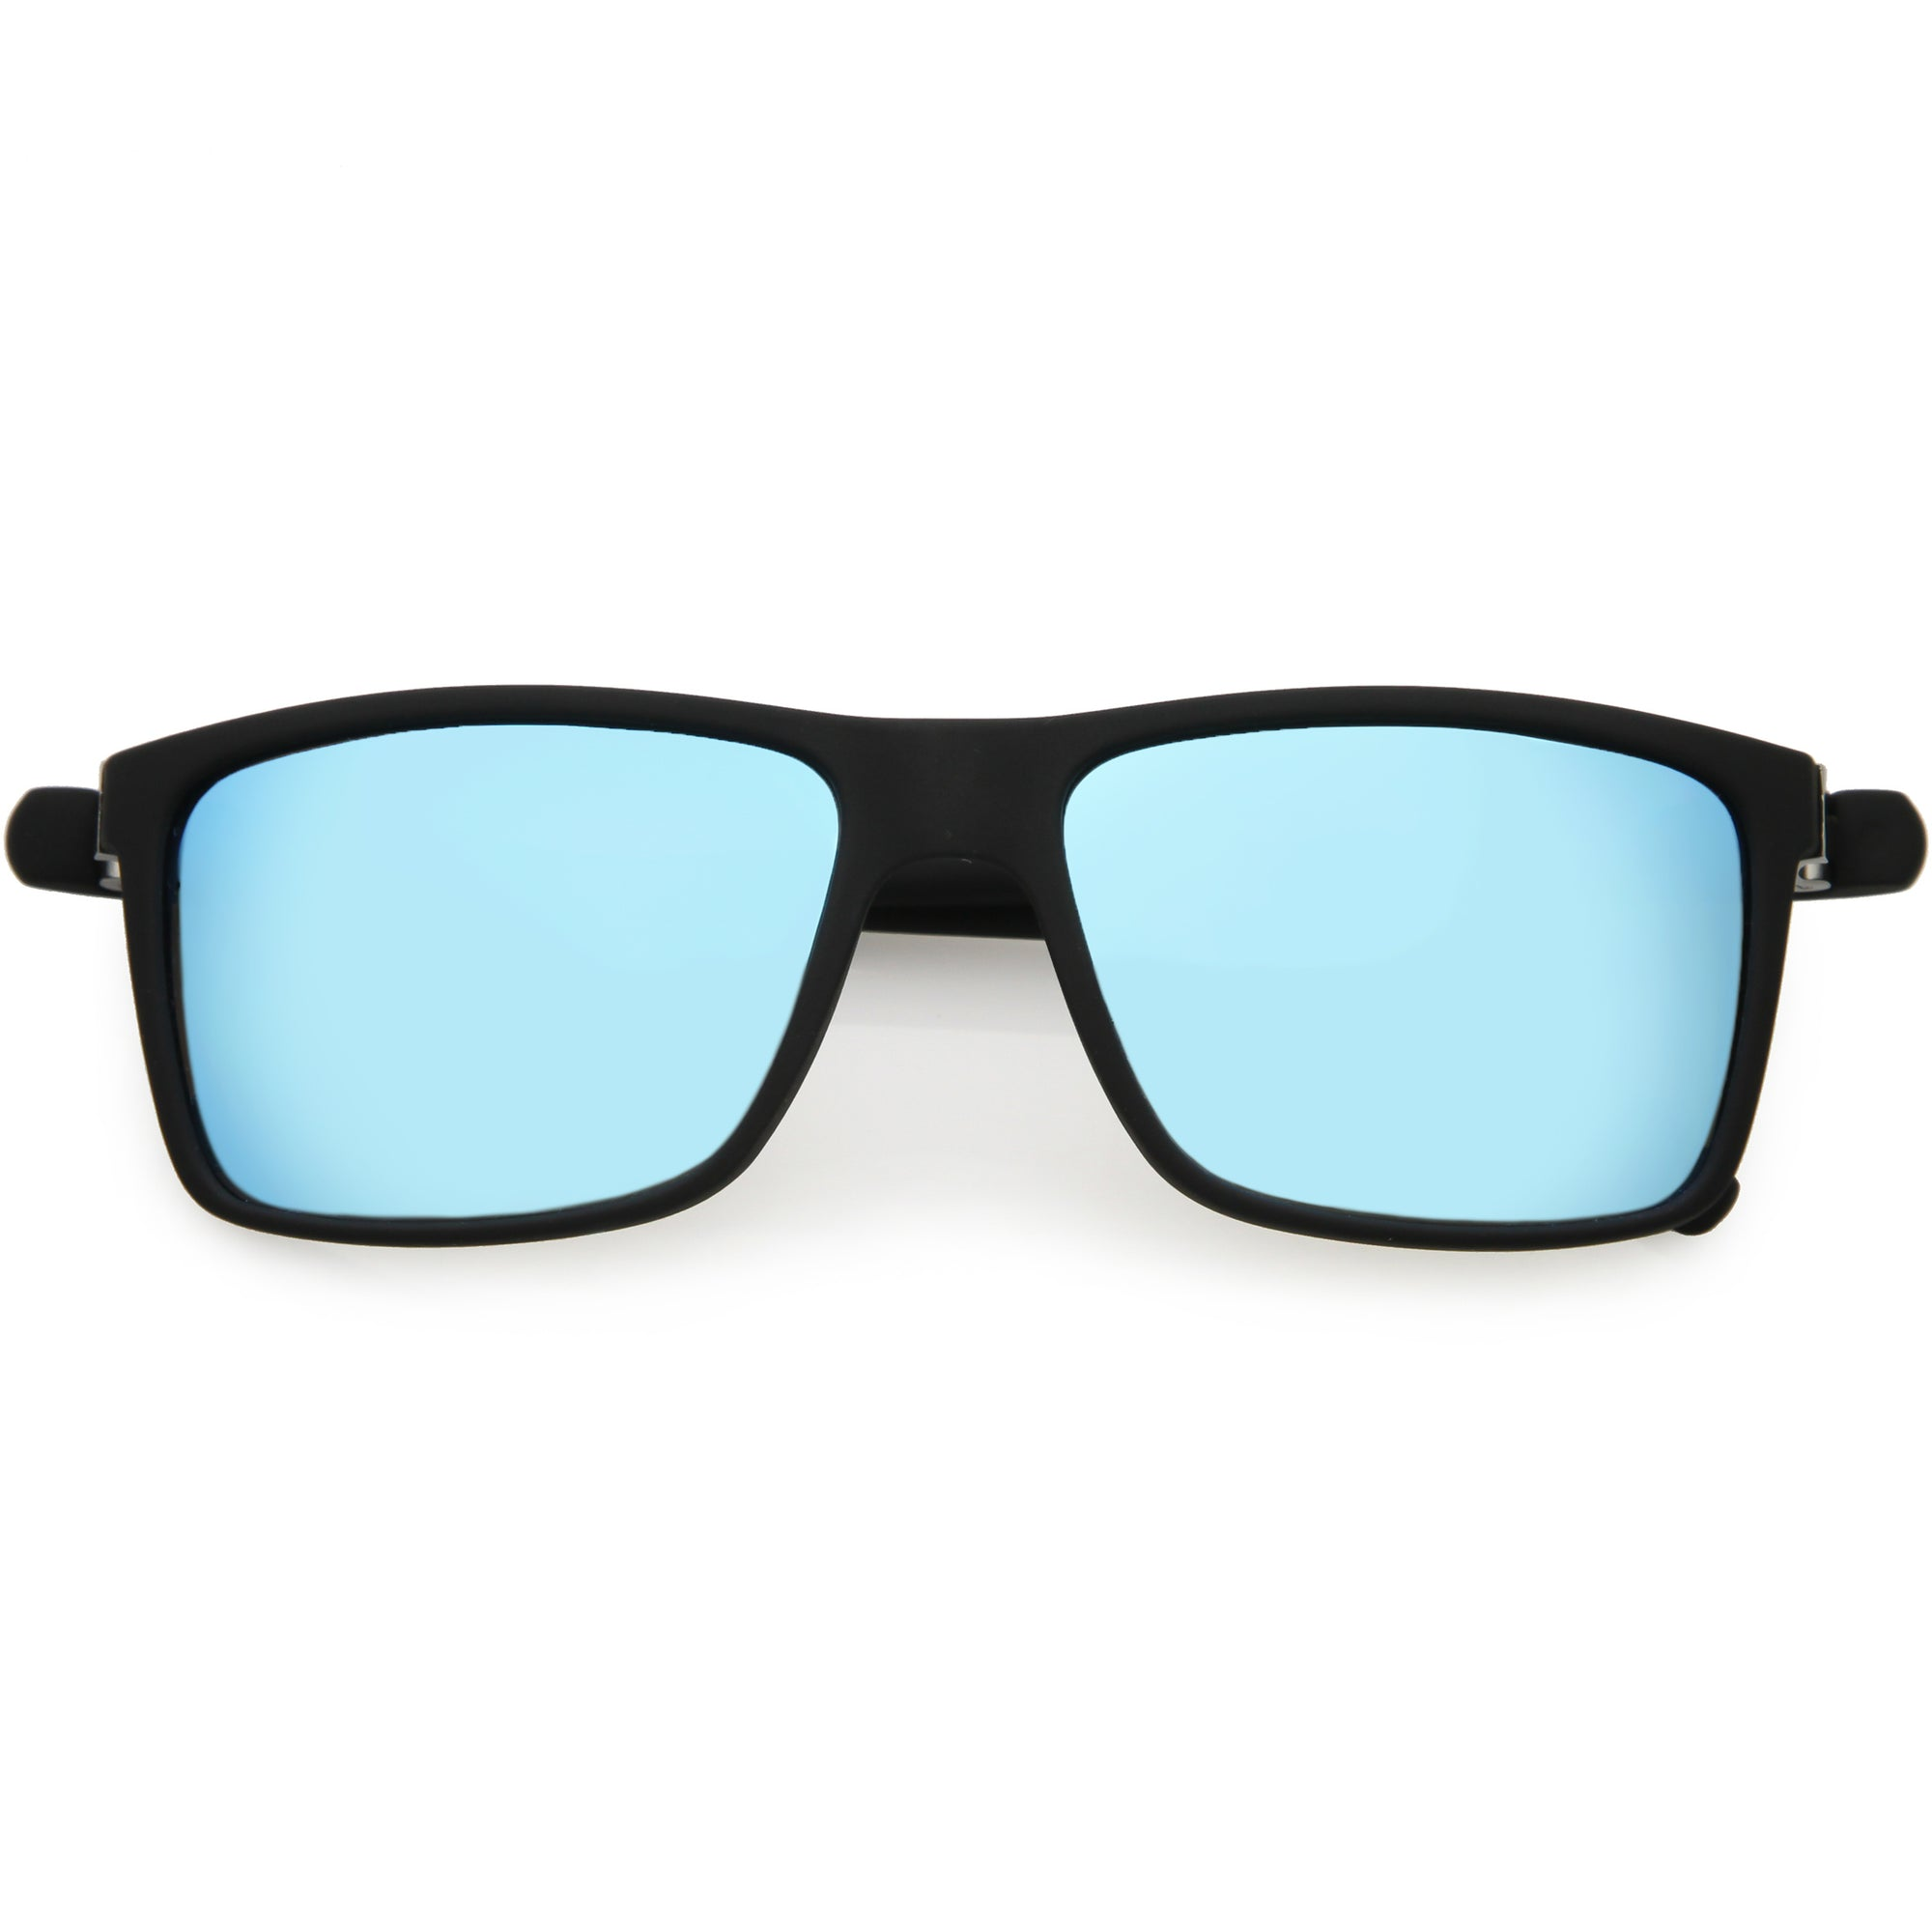 Matte Slim Arms Polarized Lens Square Sunglasses C902